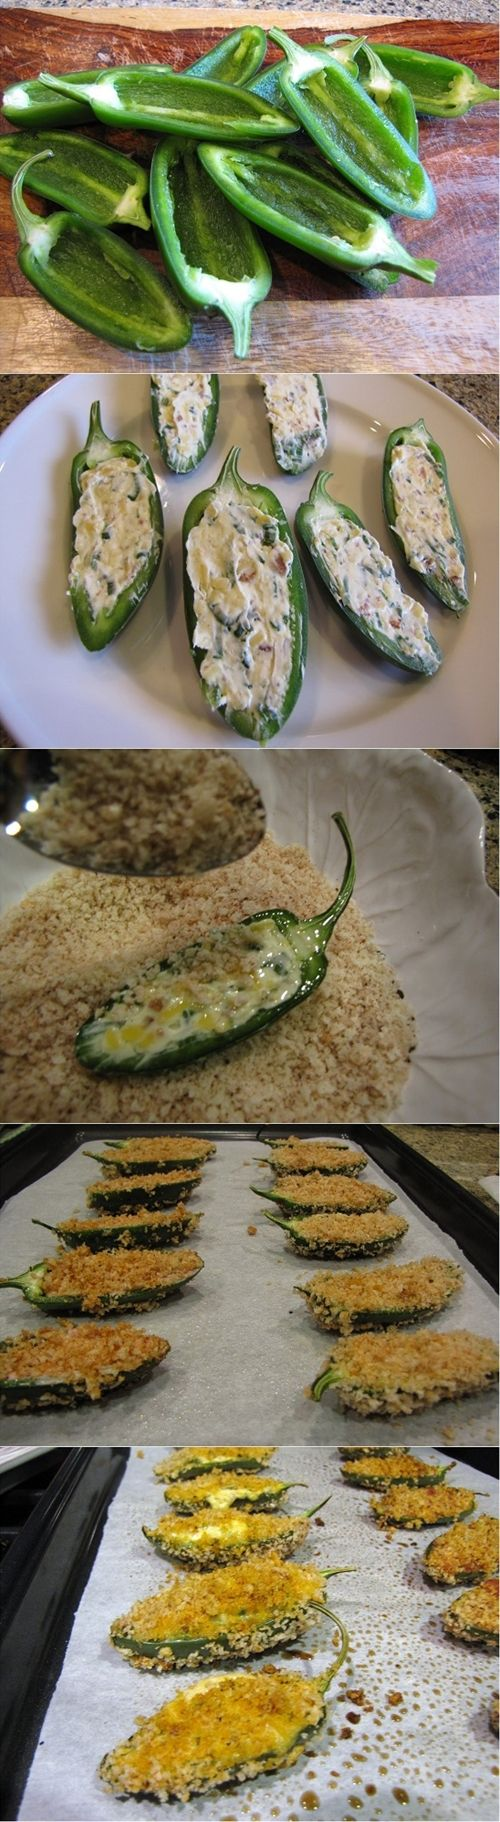 1000+ ideas about Jalapeno Poppers Baked on Pinterest ...